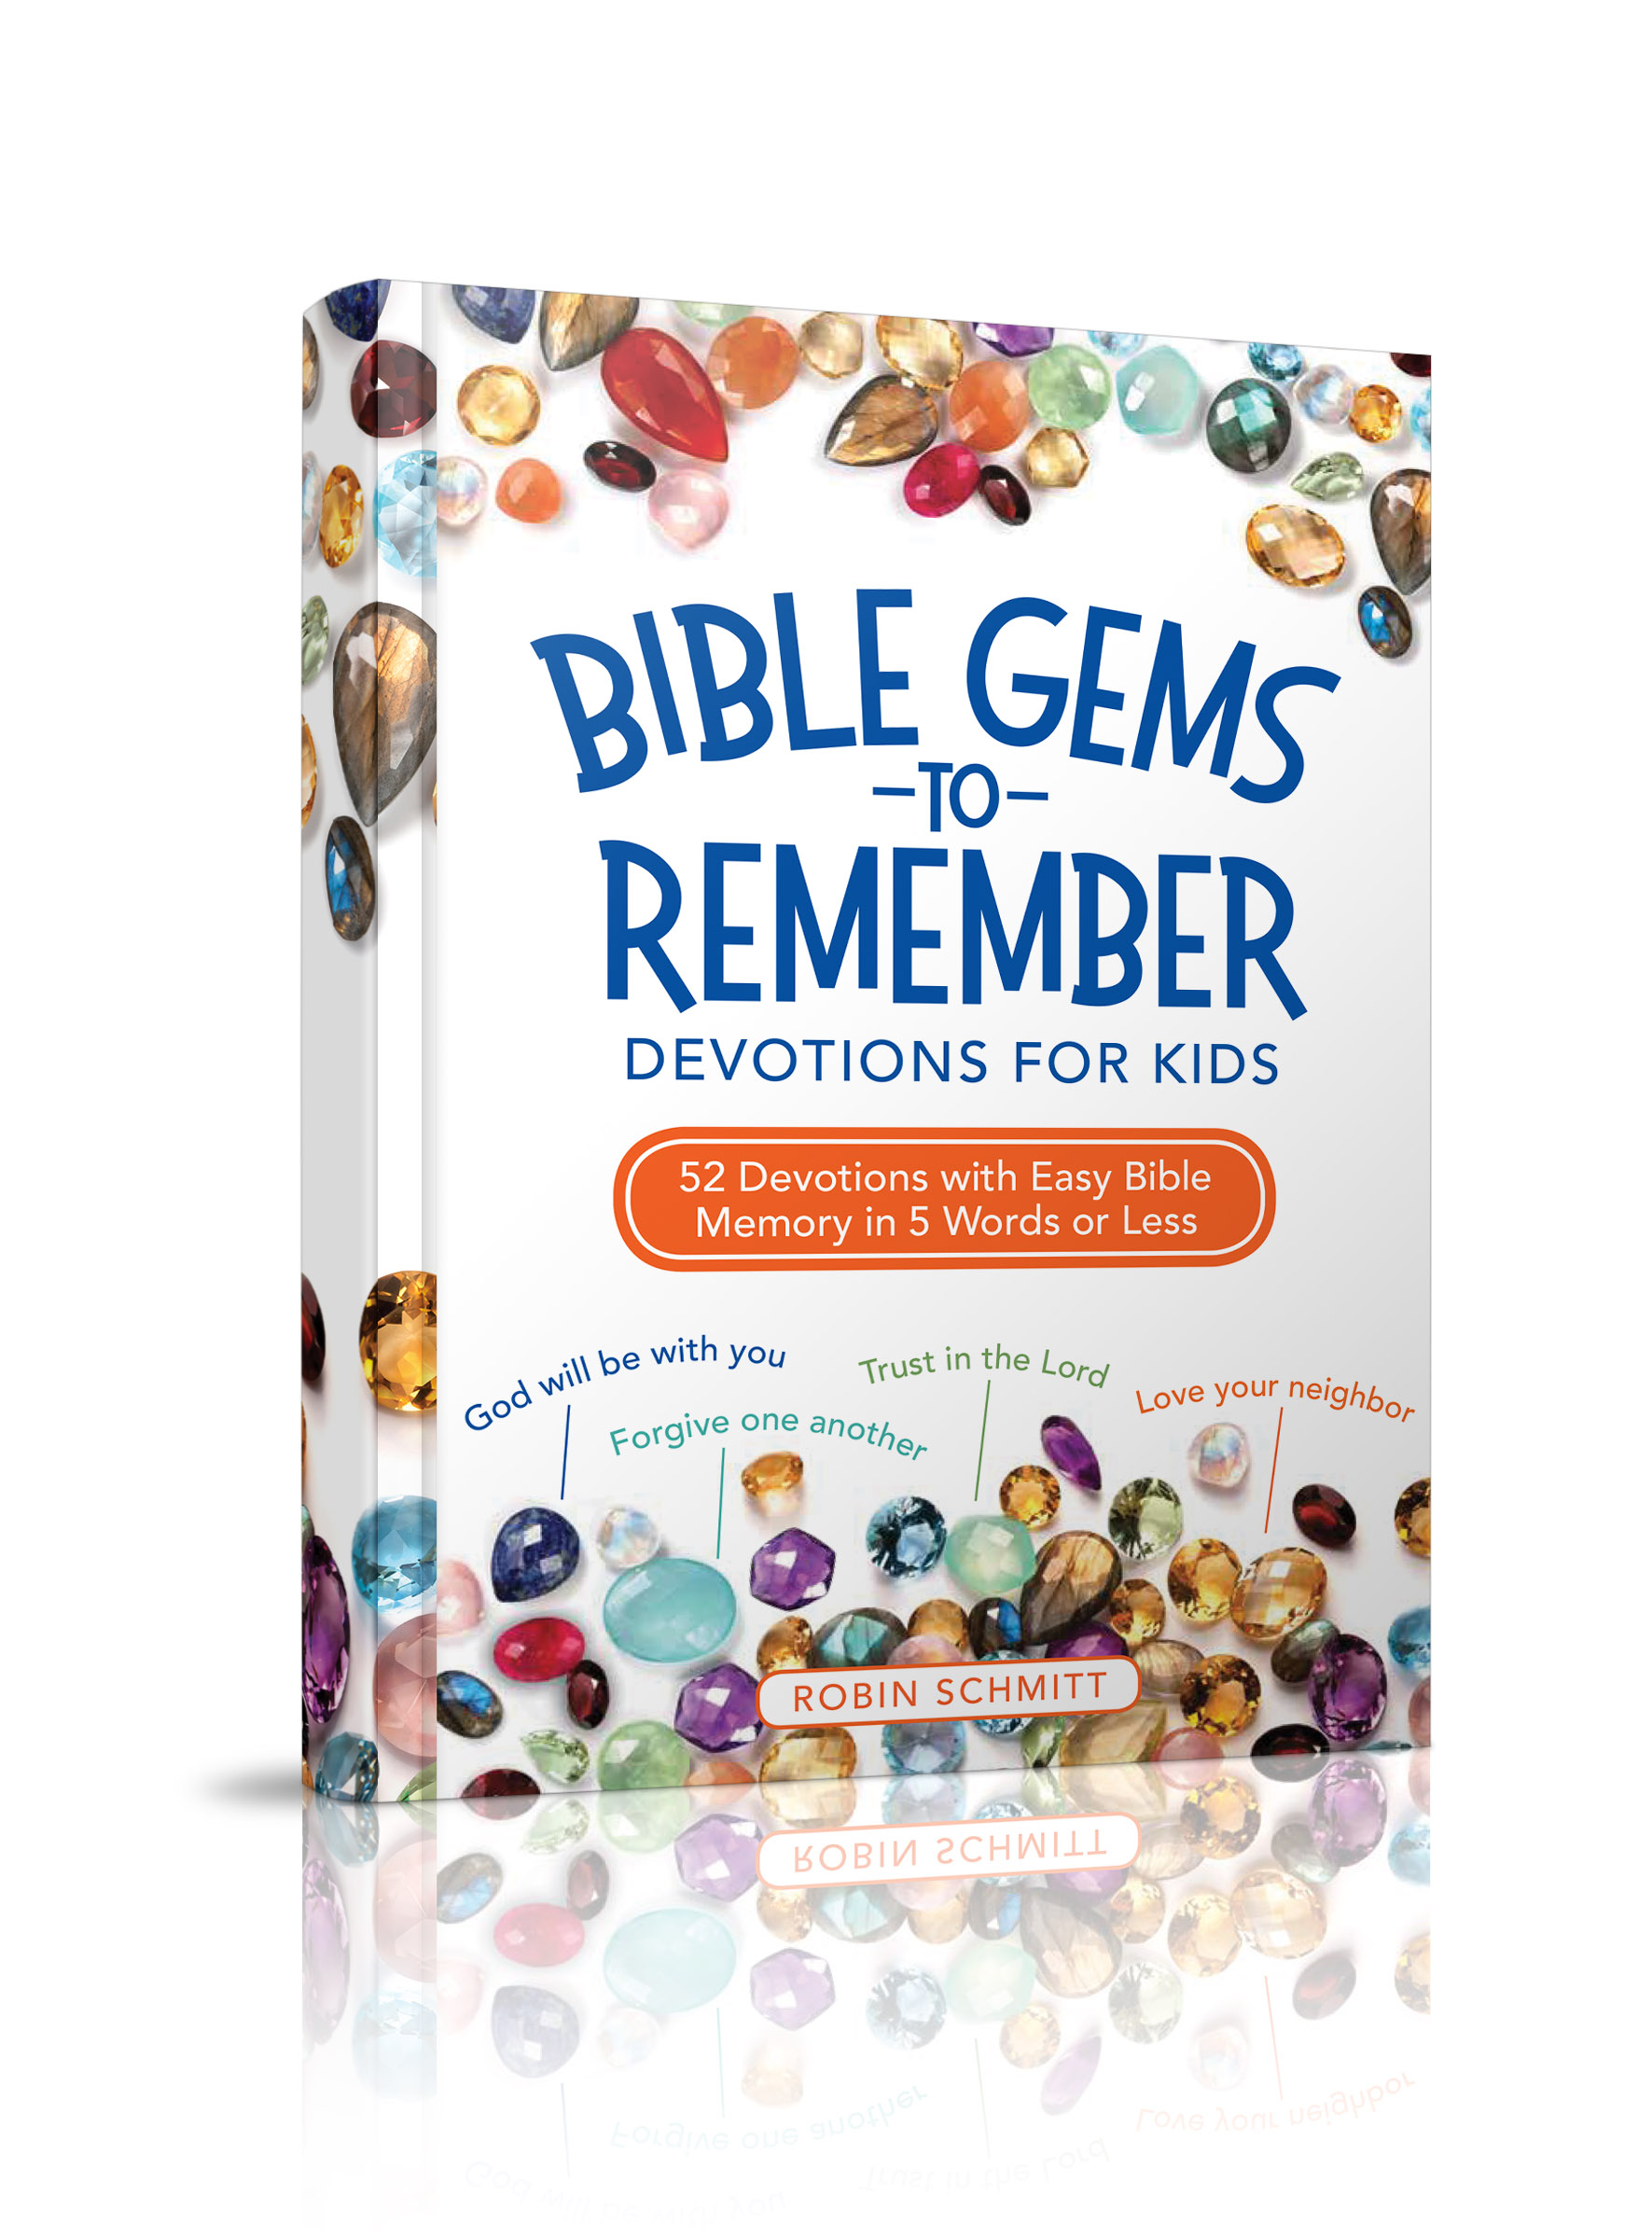 Buy your copy of Bible Gems to Remember Devotions for Kids in the Bible Gateway Store where you'll enjoy low prices every day